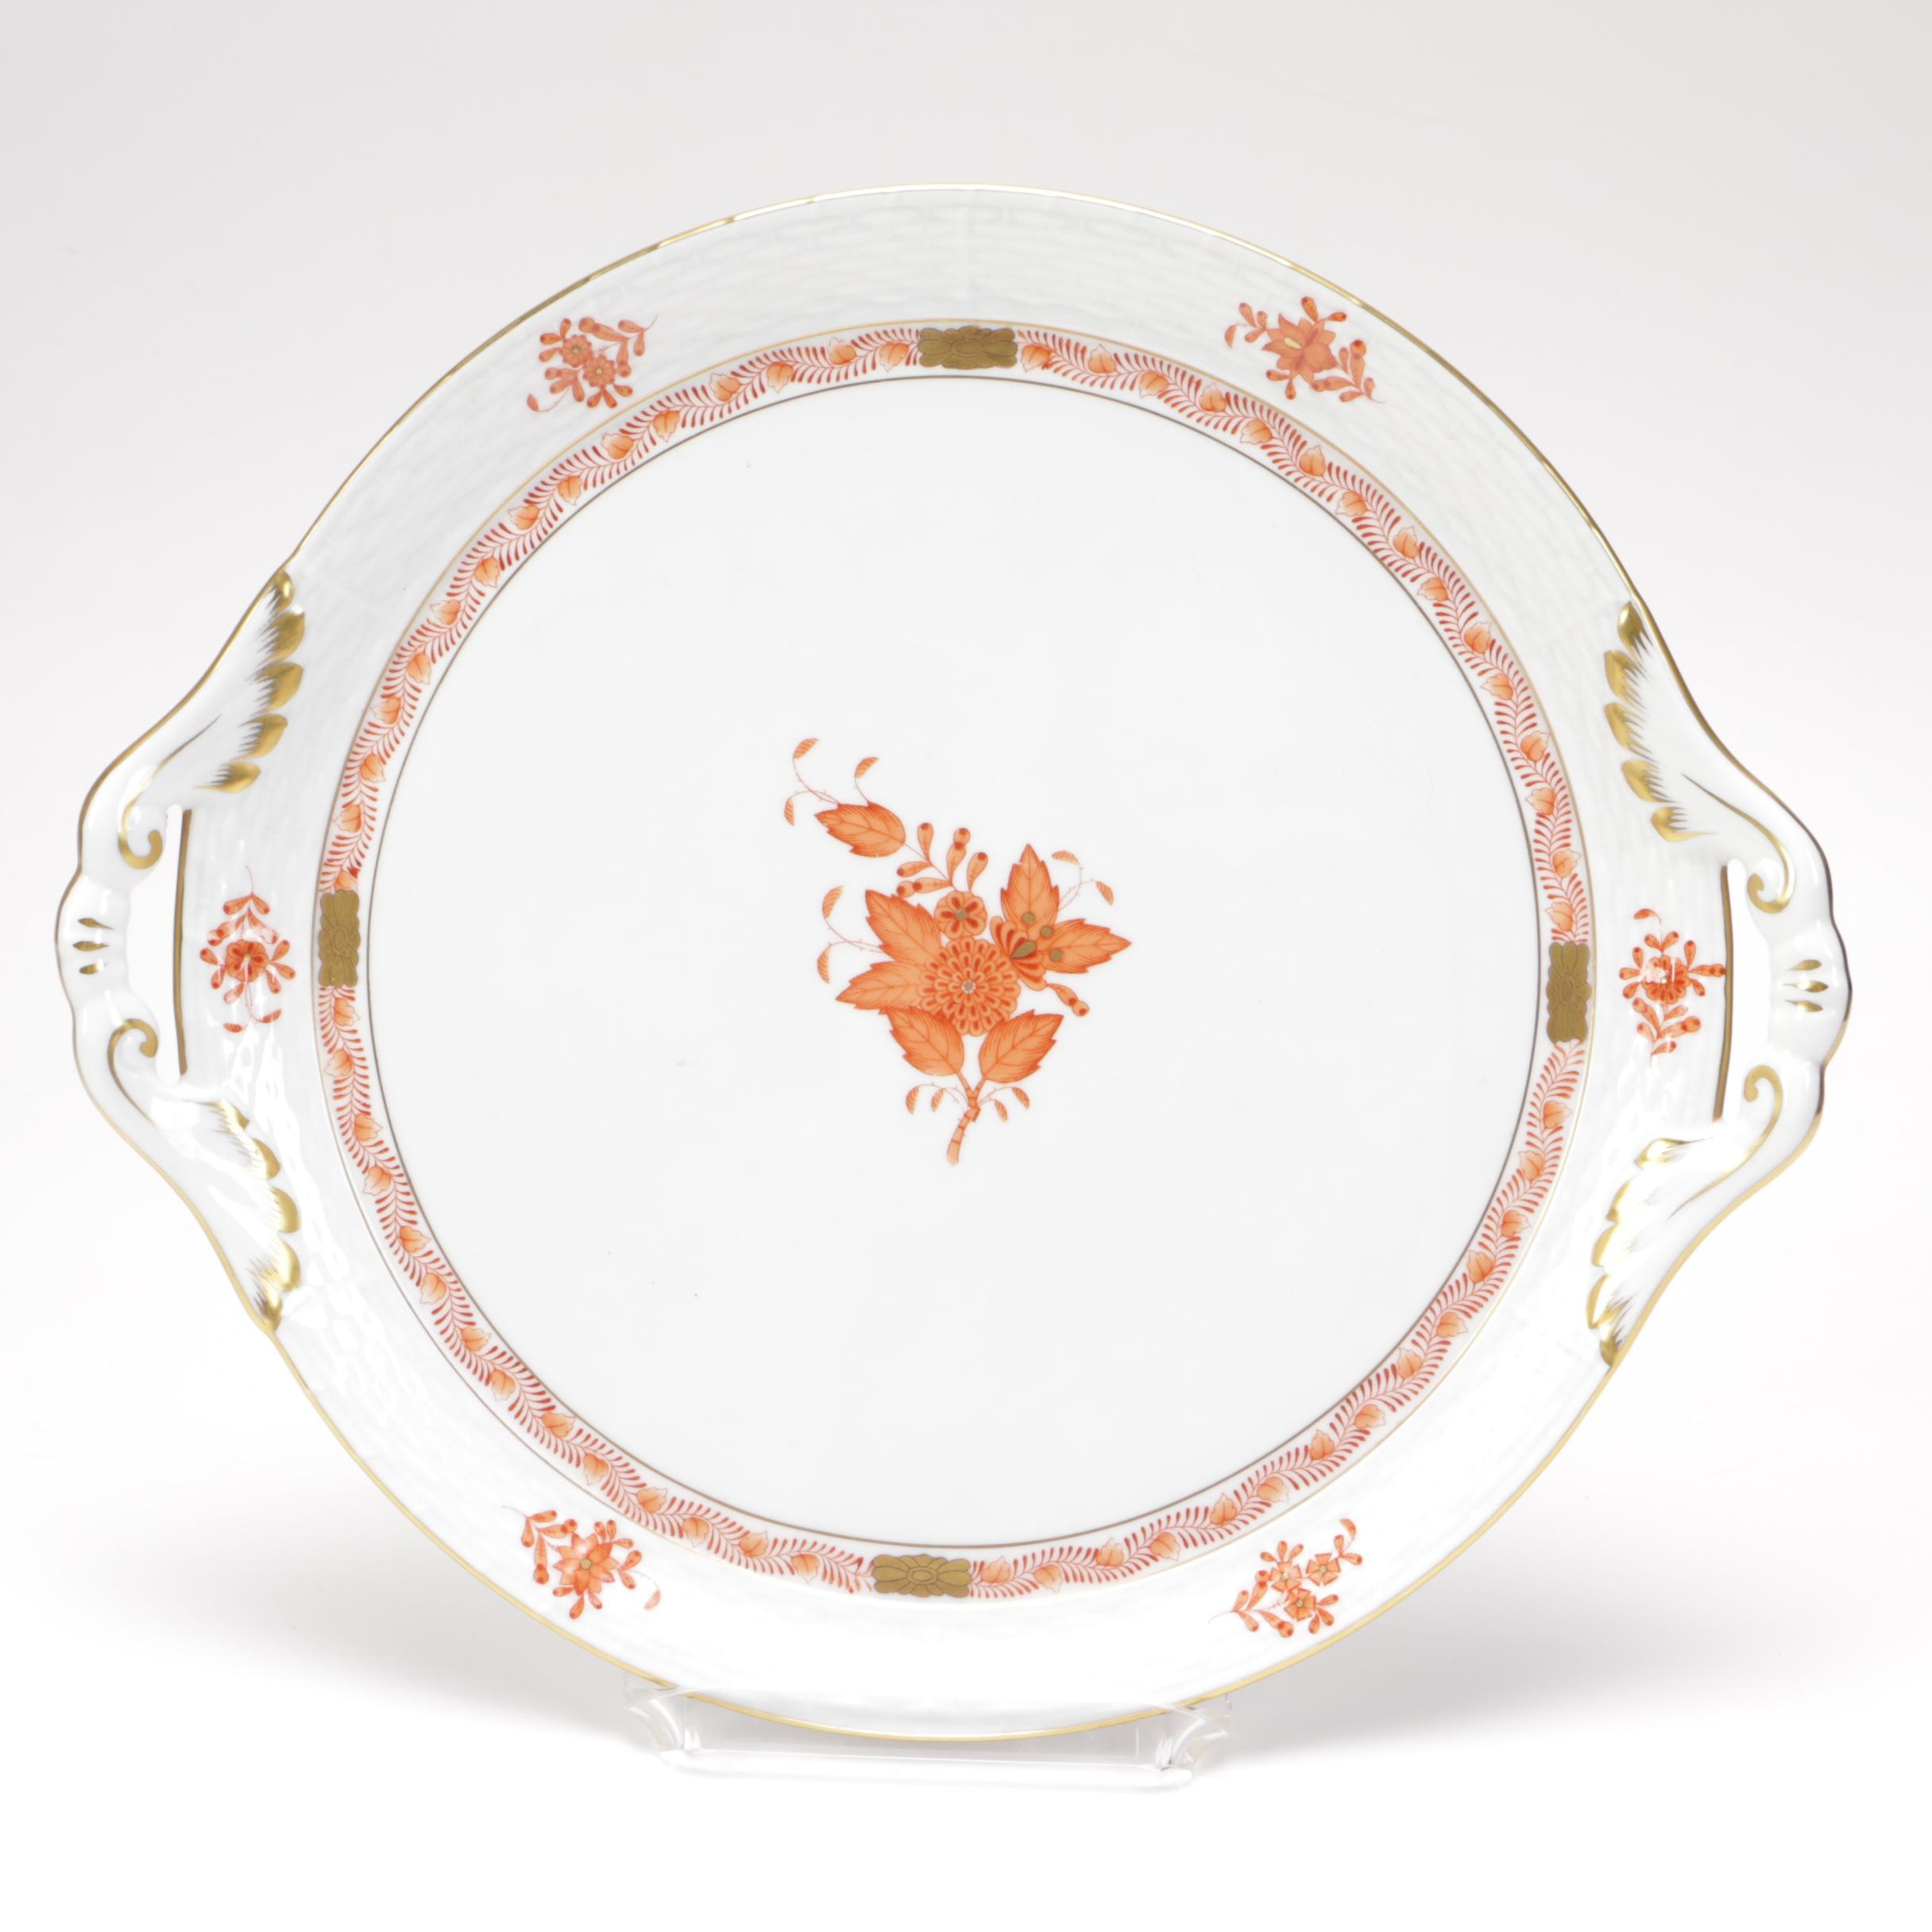 Herend White Ceramic Platter with Floral Motif